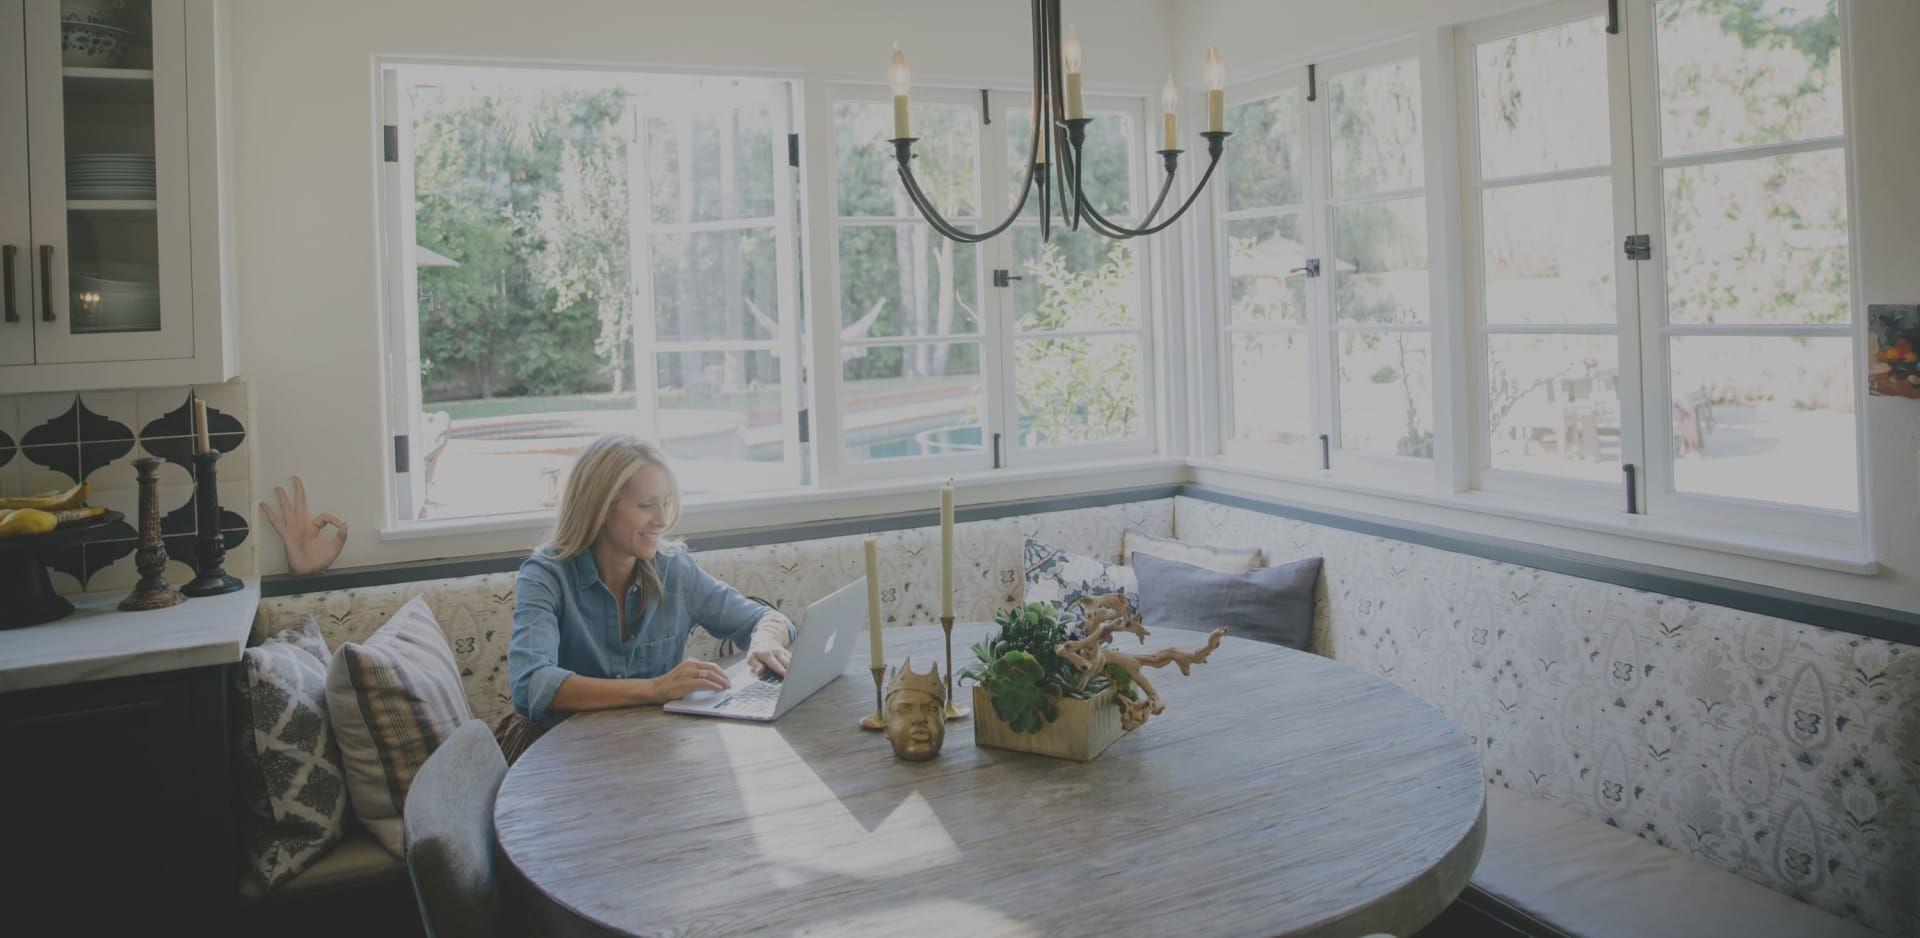 3 Tips for Setting up an Inviting Home Office